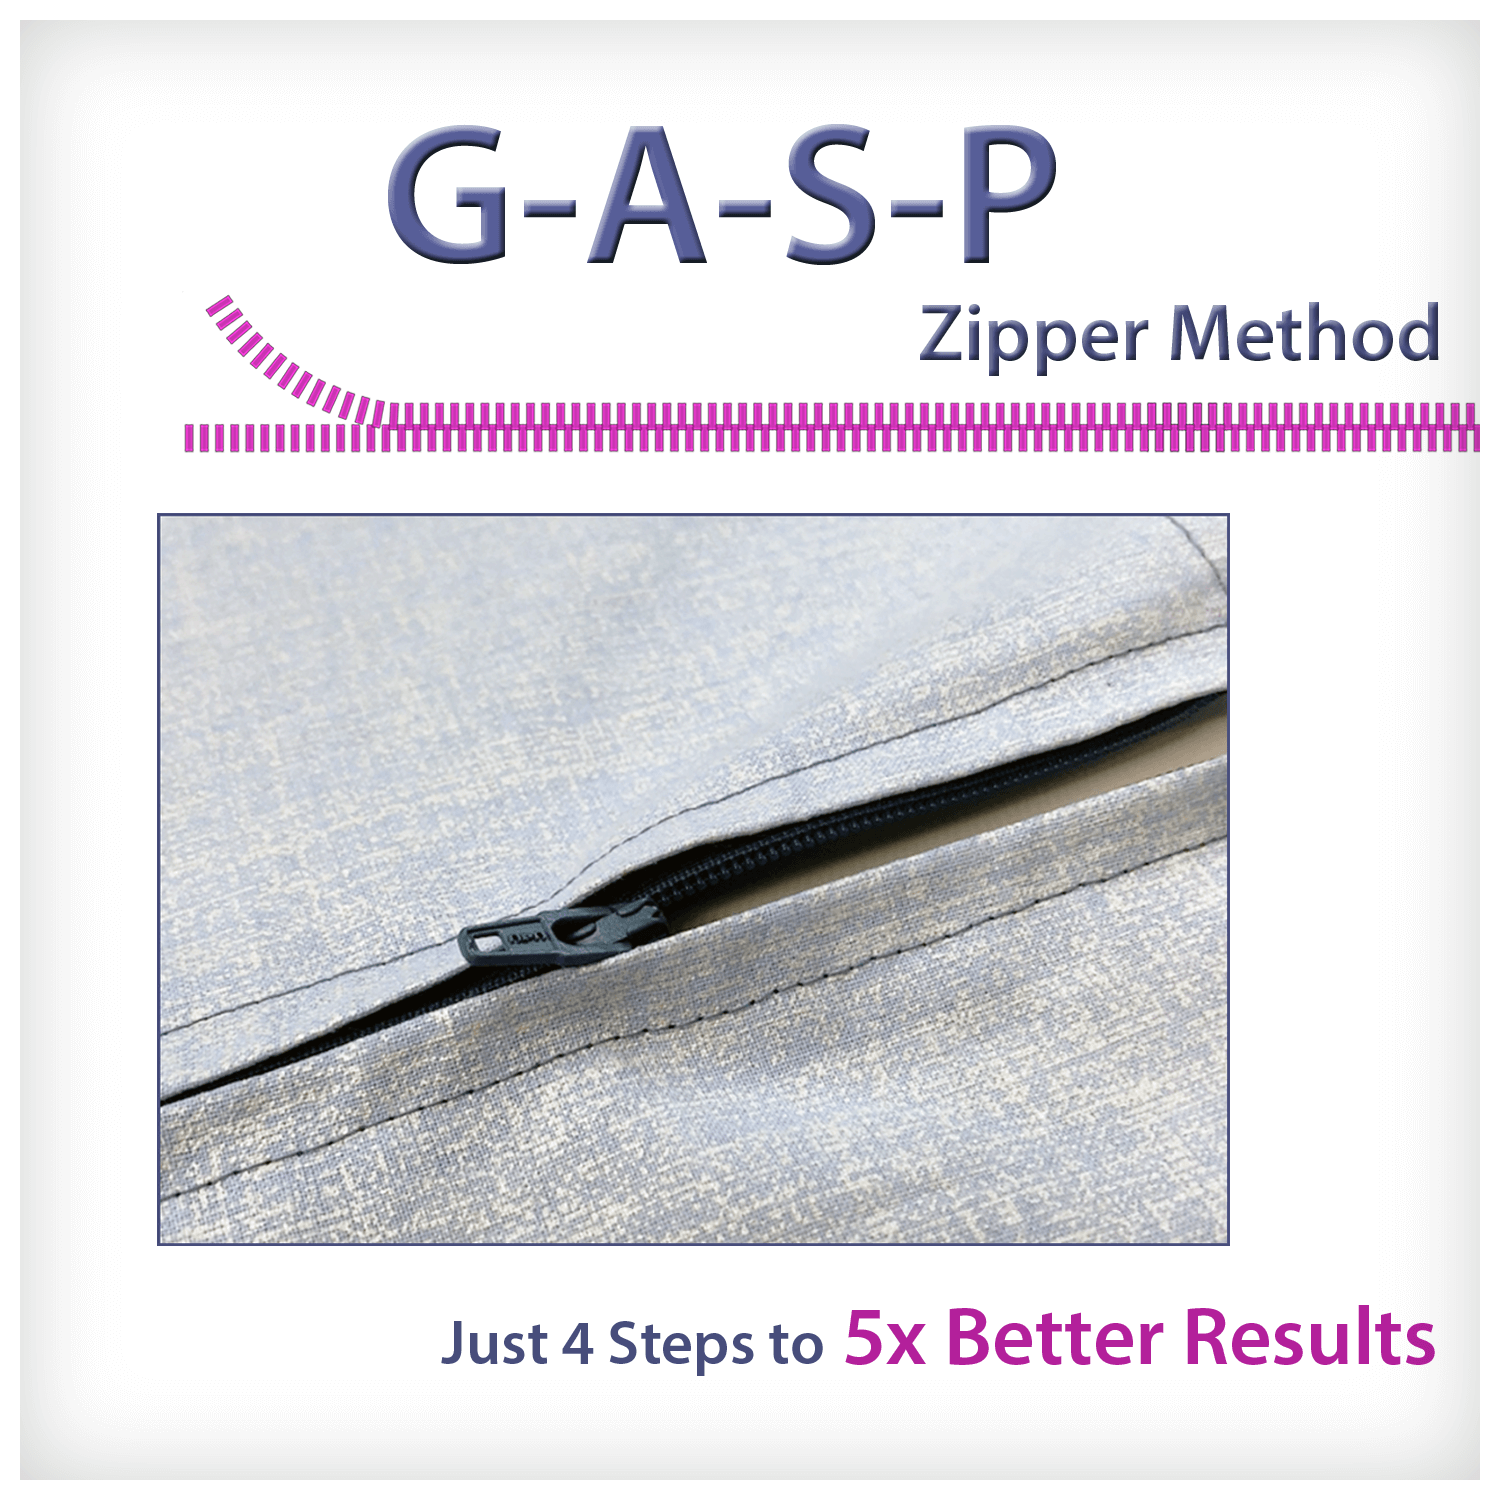 GASP zipper sewing method graphics